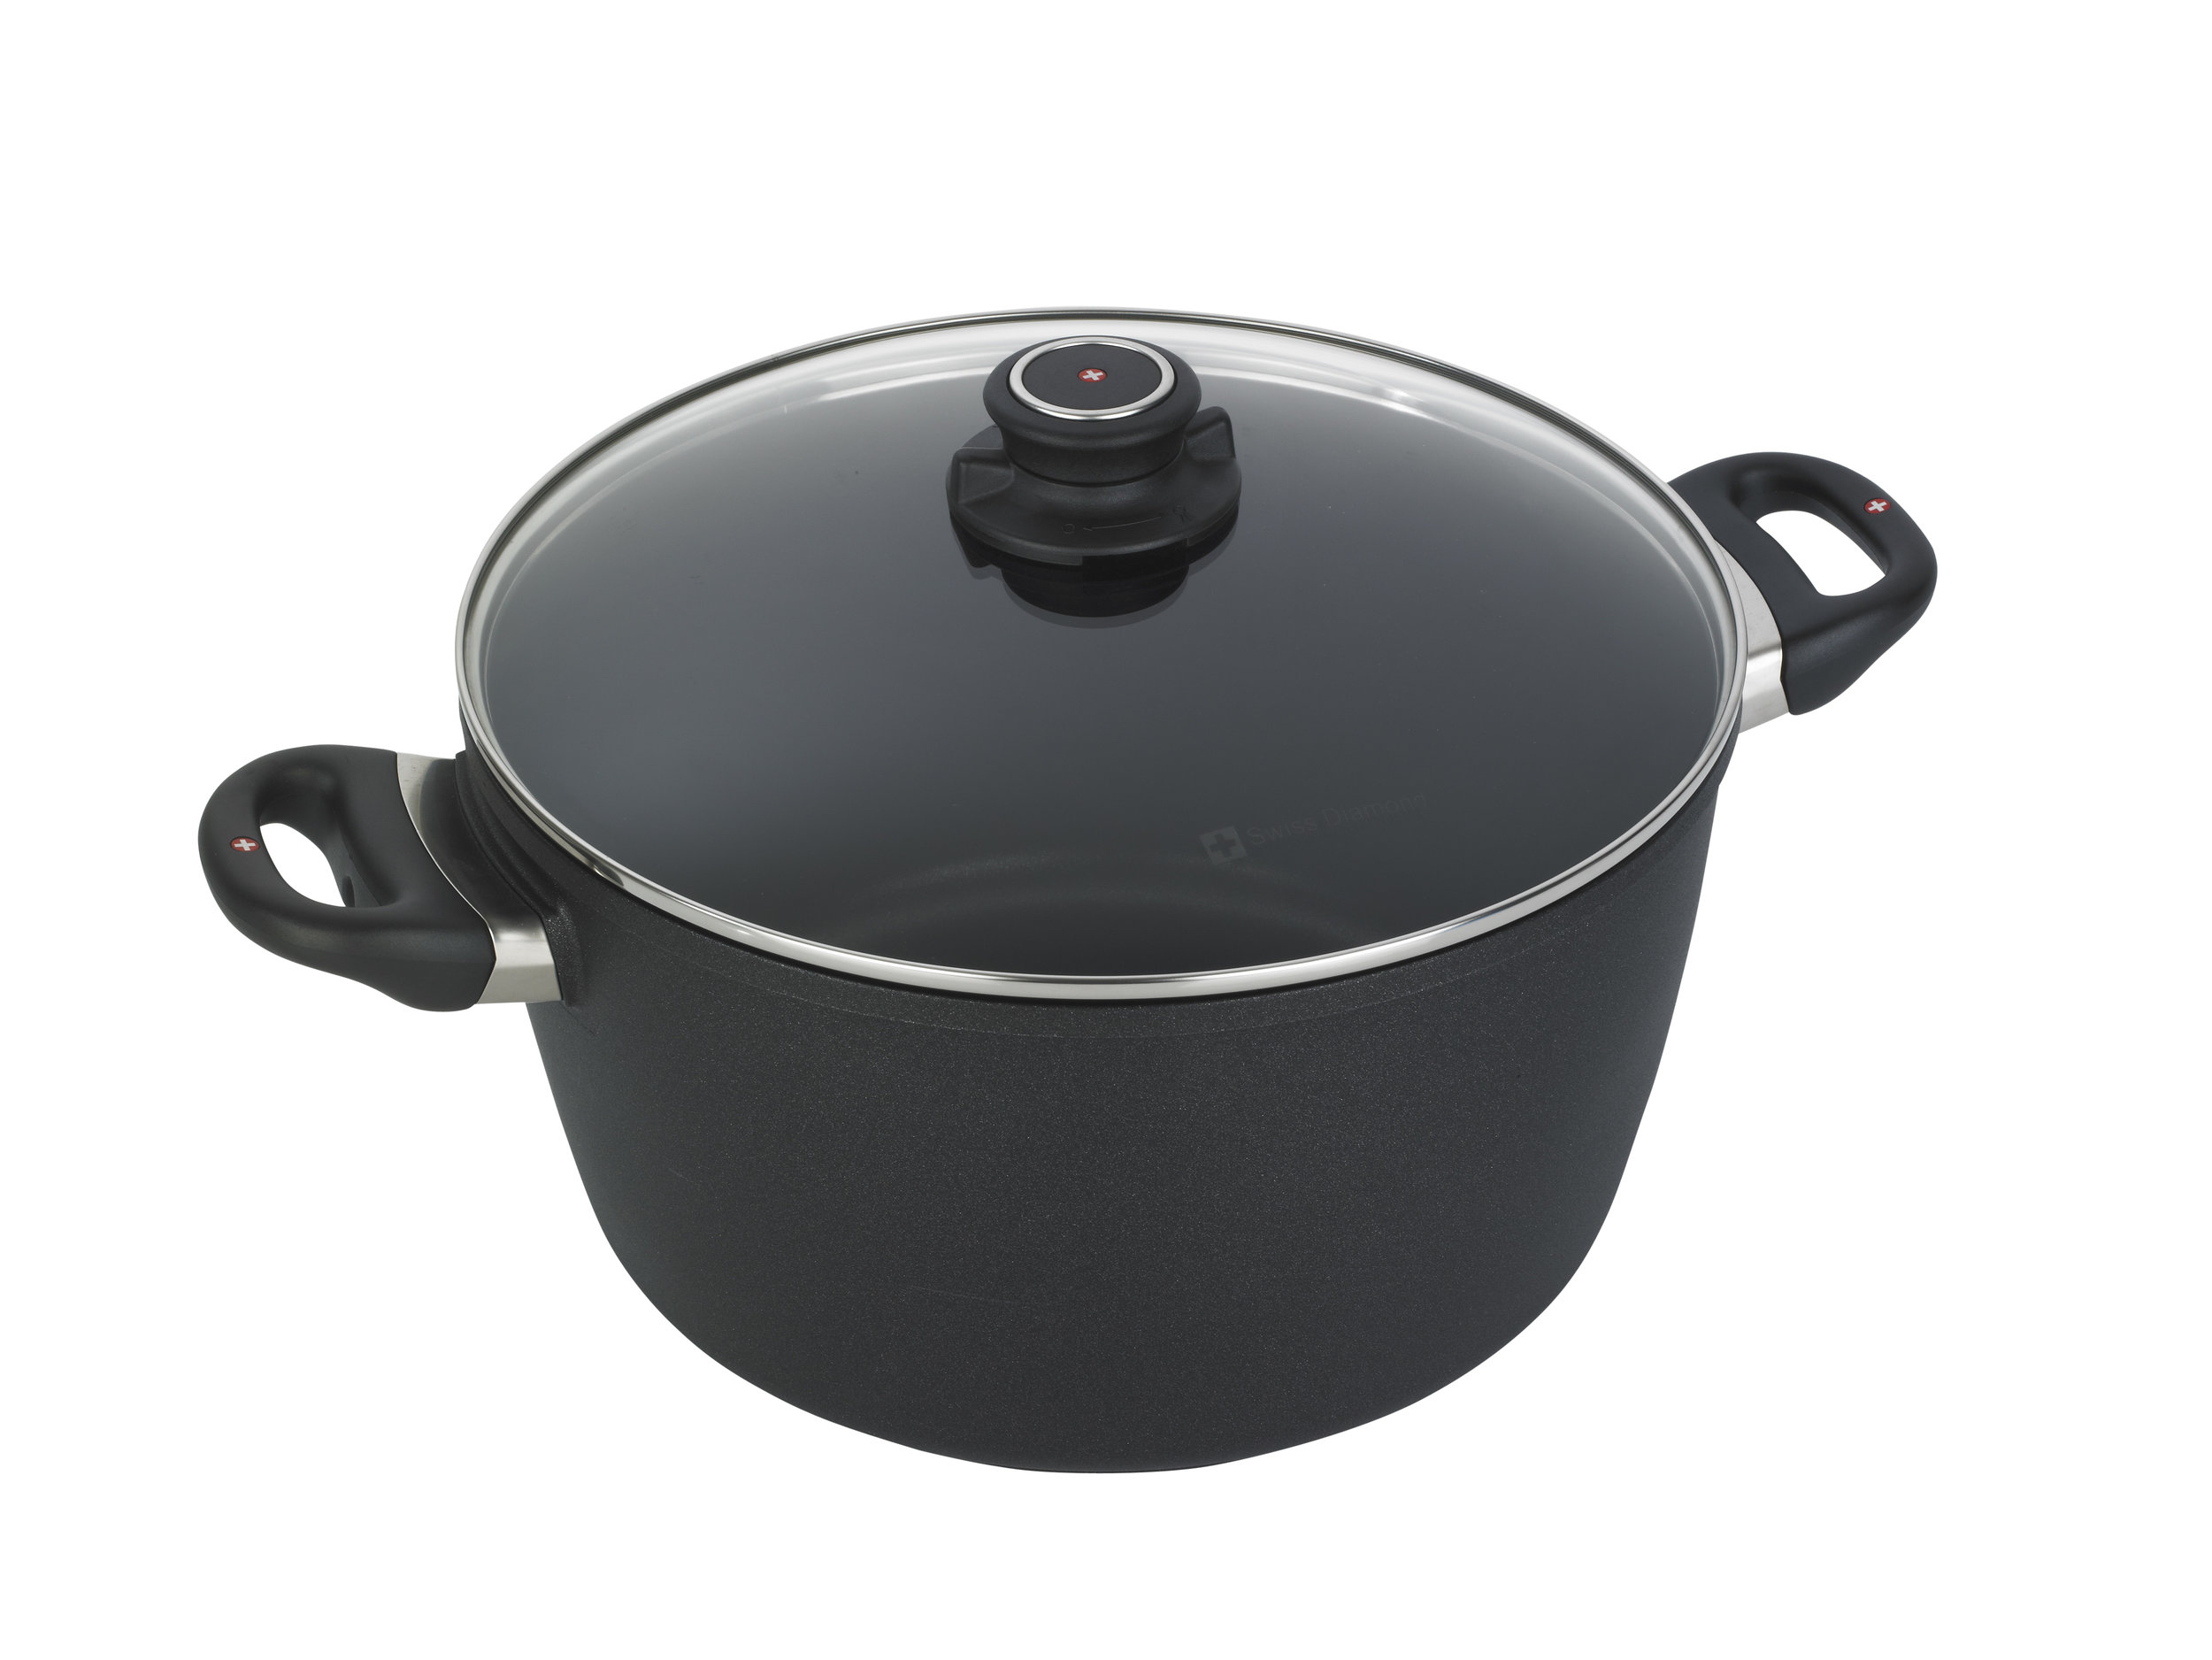 """Swiss Diamond INDUCTION STOCK POT - Winter is almost here, and this Swiss Diamond Induction Stock Pot will make all your soups, stews, pastas, and chilis easy to make. This stock pot comes from their HD line of products, measures 11"""" and has an 8.5 quart capacity. It is also over safe, and will work on most types of stoves. It is super easy to clean, and you don't even have to prep your pot before cooking. It's built right in with diamond coating which allows for a nonstick surface. Diamonds?! Yes! These Swiss Diamond pans contain """"up to 240,000 real diamond crystals!"""" And """"Diamonds conduct heat better than any metal and four times better than Copper!"""" They say diamonds are a girl's best friend…why not add it to your cooking lineup?! The pot itself is made of cast aluminum plus the diamond coating, which makes for even heating all around. This induction stock pot also has an awesome lid made of heat-tempered glass that has an adjustable vent, so no more having to balance your lid on the side to let steam out. Once you get your first Swiss Diamond pot or pan, you're not going to want to go back!"""